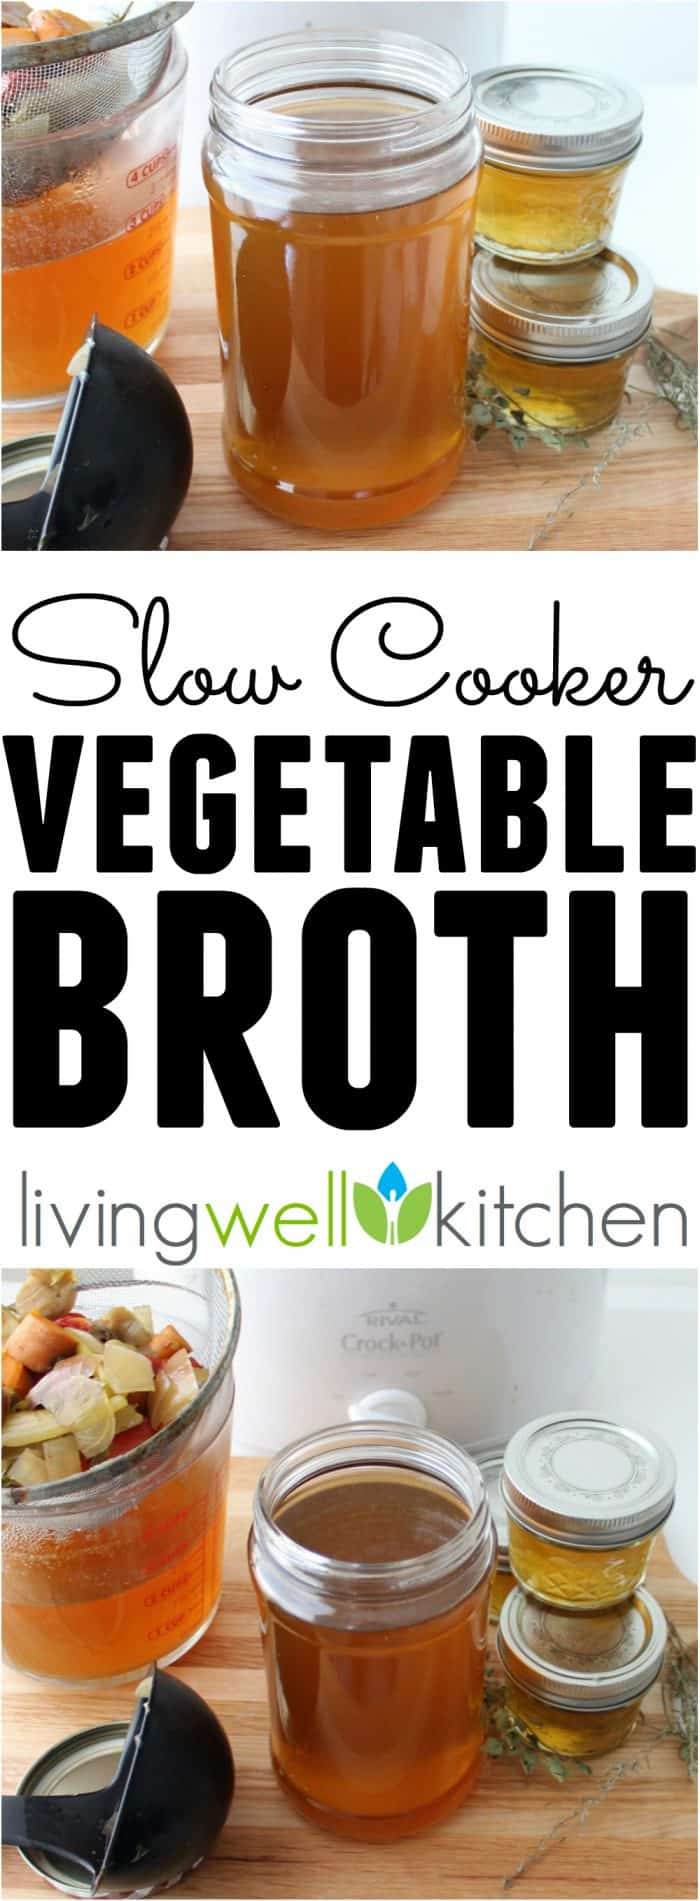 This incredibly easy homemade Vegetable Broth recipe is made in a slow cooker and is completely customizable